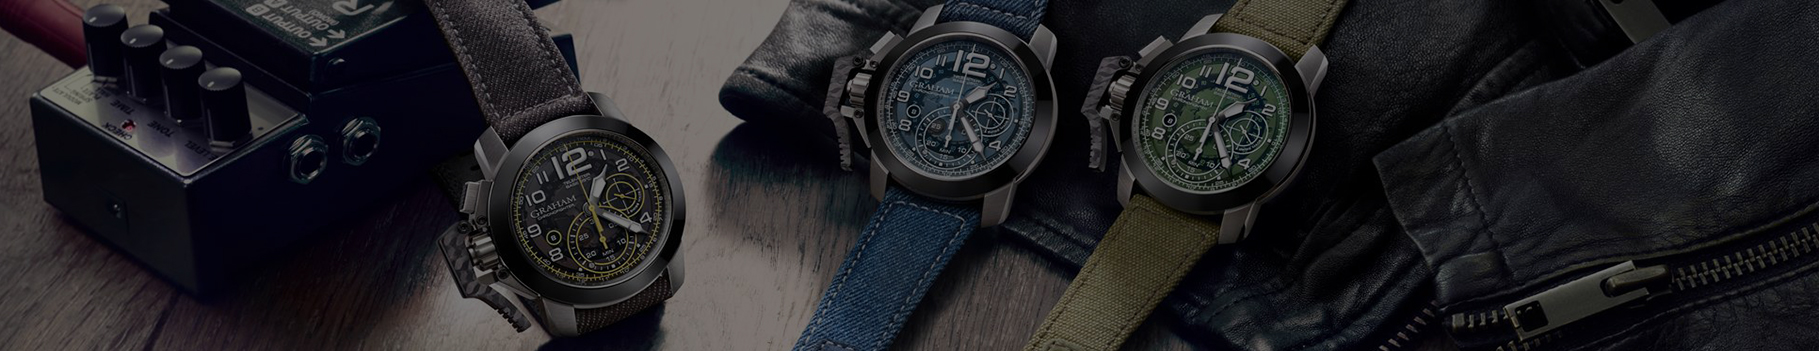 Graham Chronofighter Watches